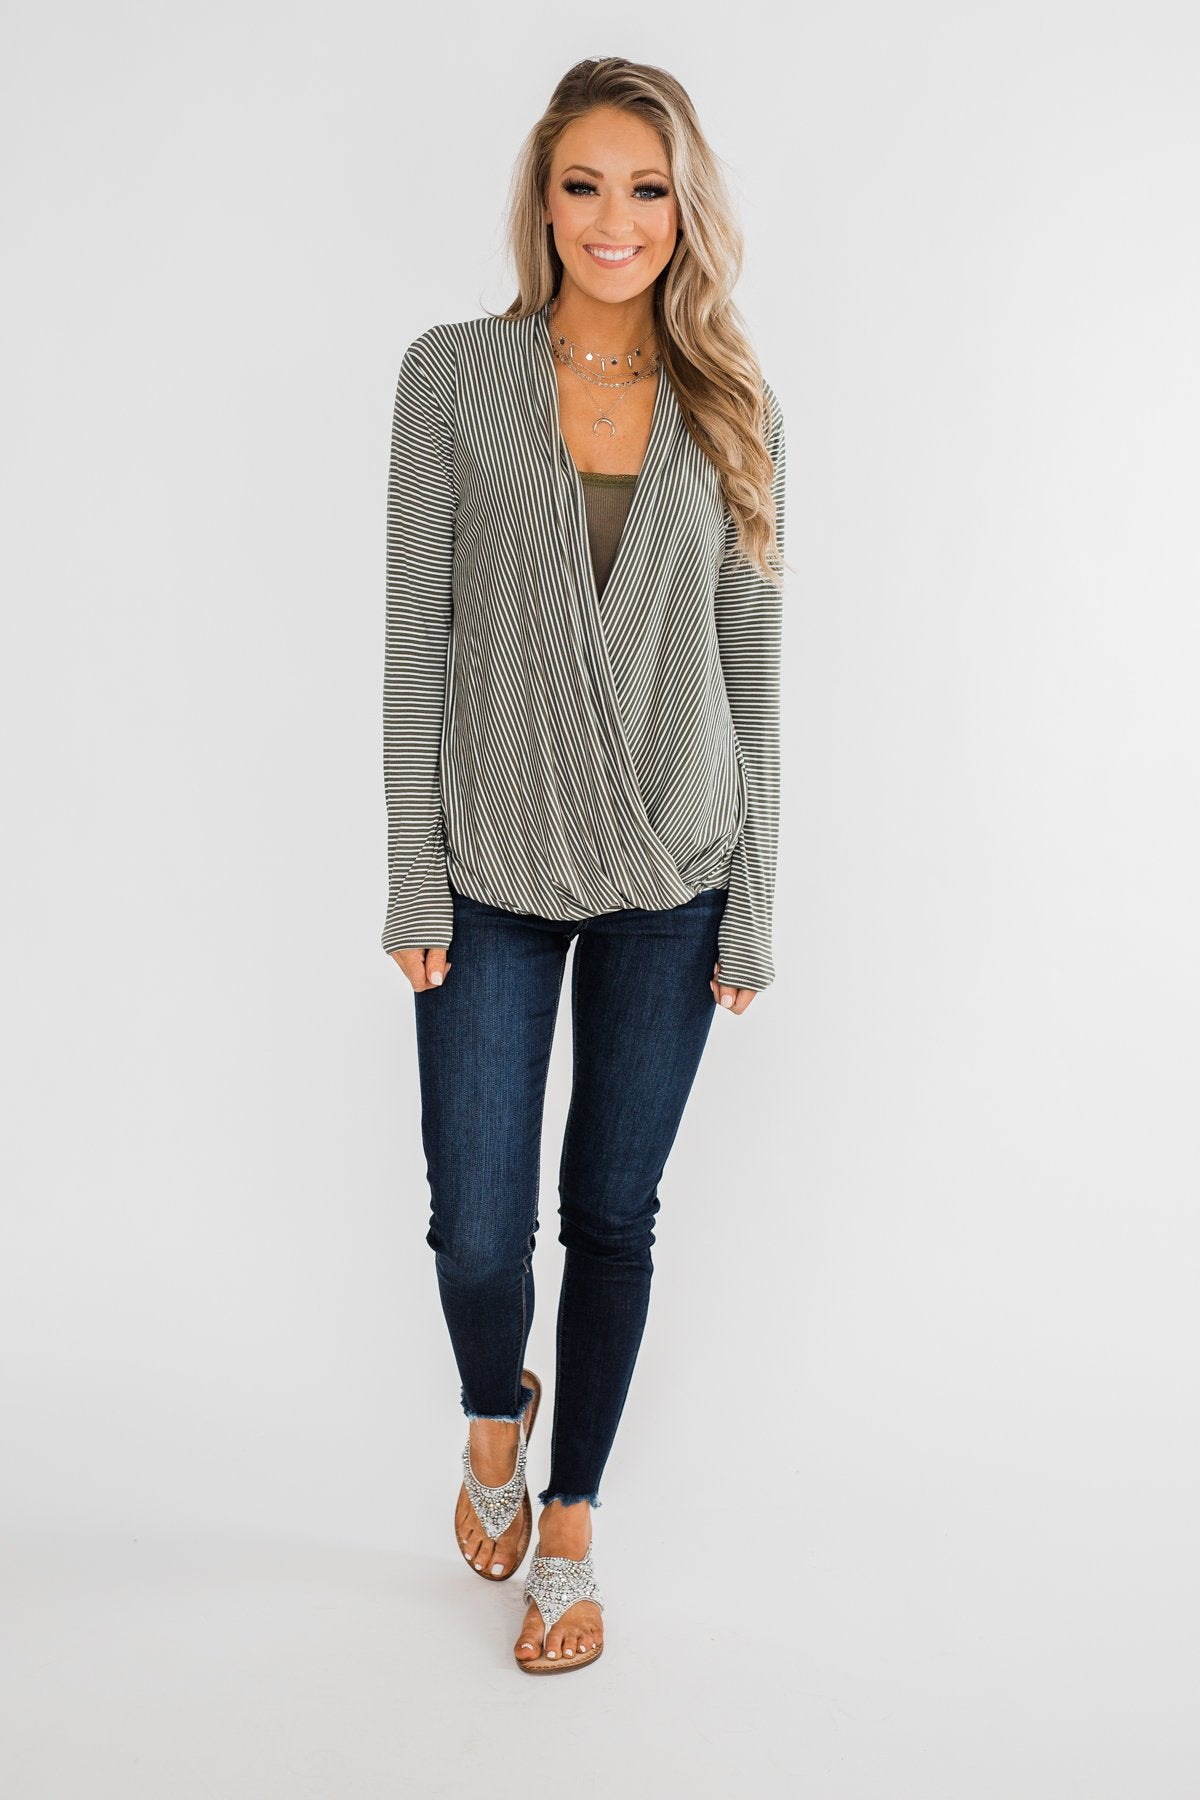 Keep It Going Long Sleeve Striped Wrap Top- Olive